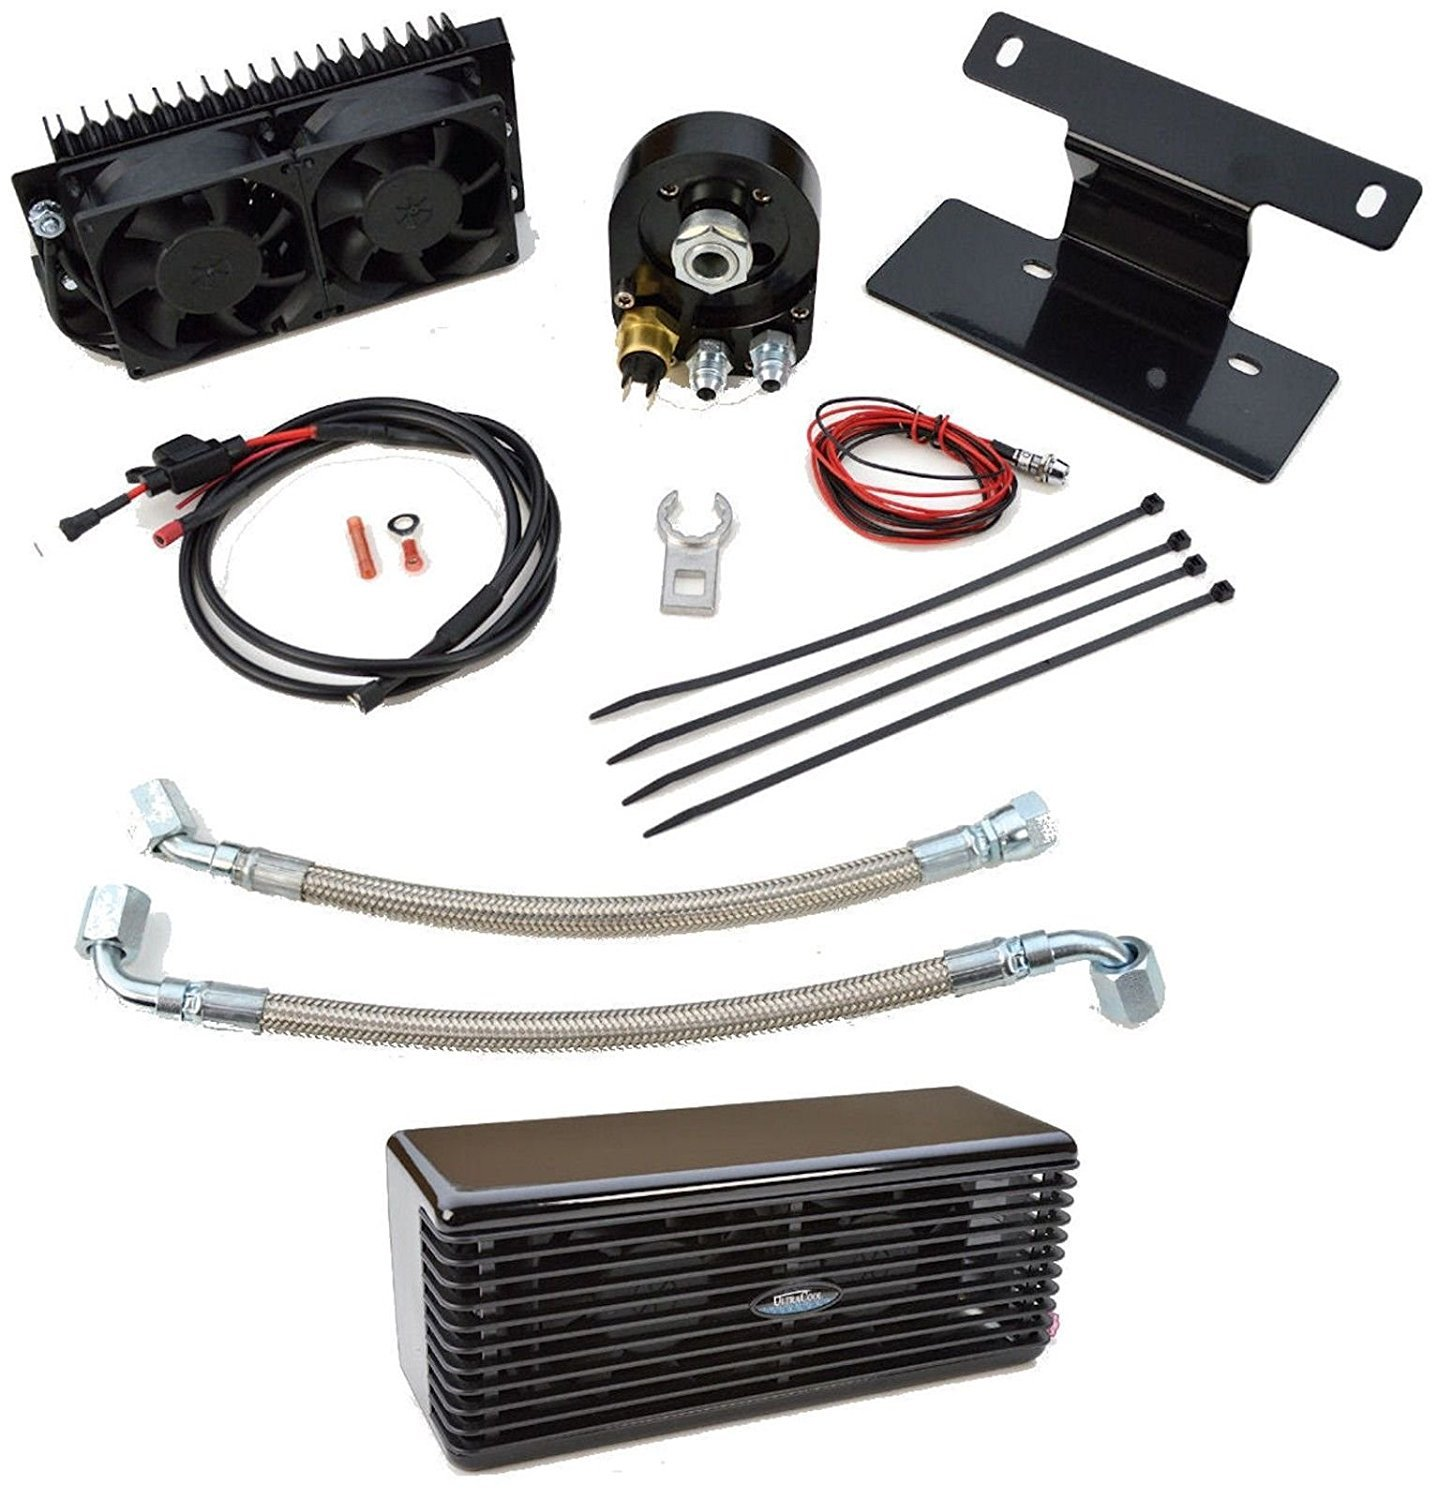 New Reefer 20 Ultracool Oil Cooler Harley Flh Flt 09 16 Selang Cooller Glossy Black Ultra Cool Automotive